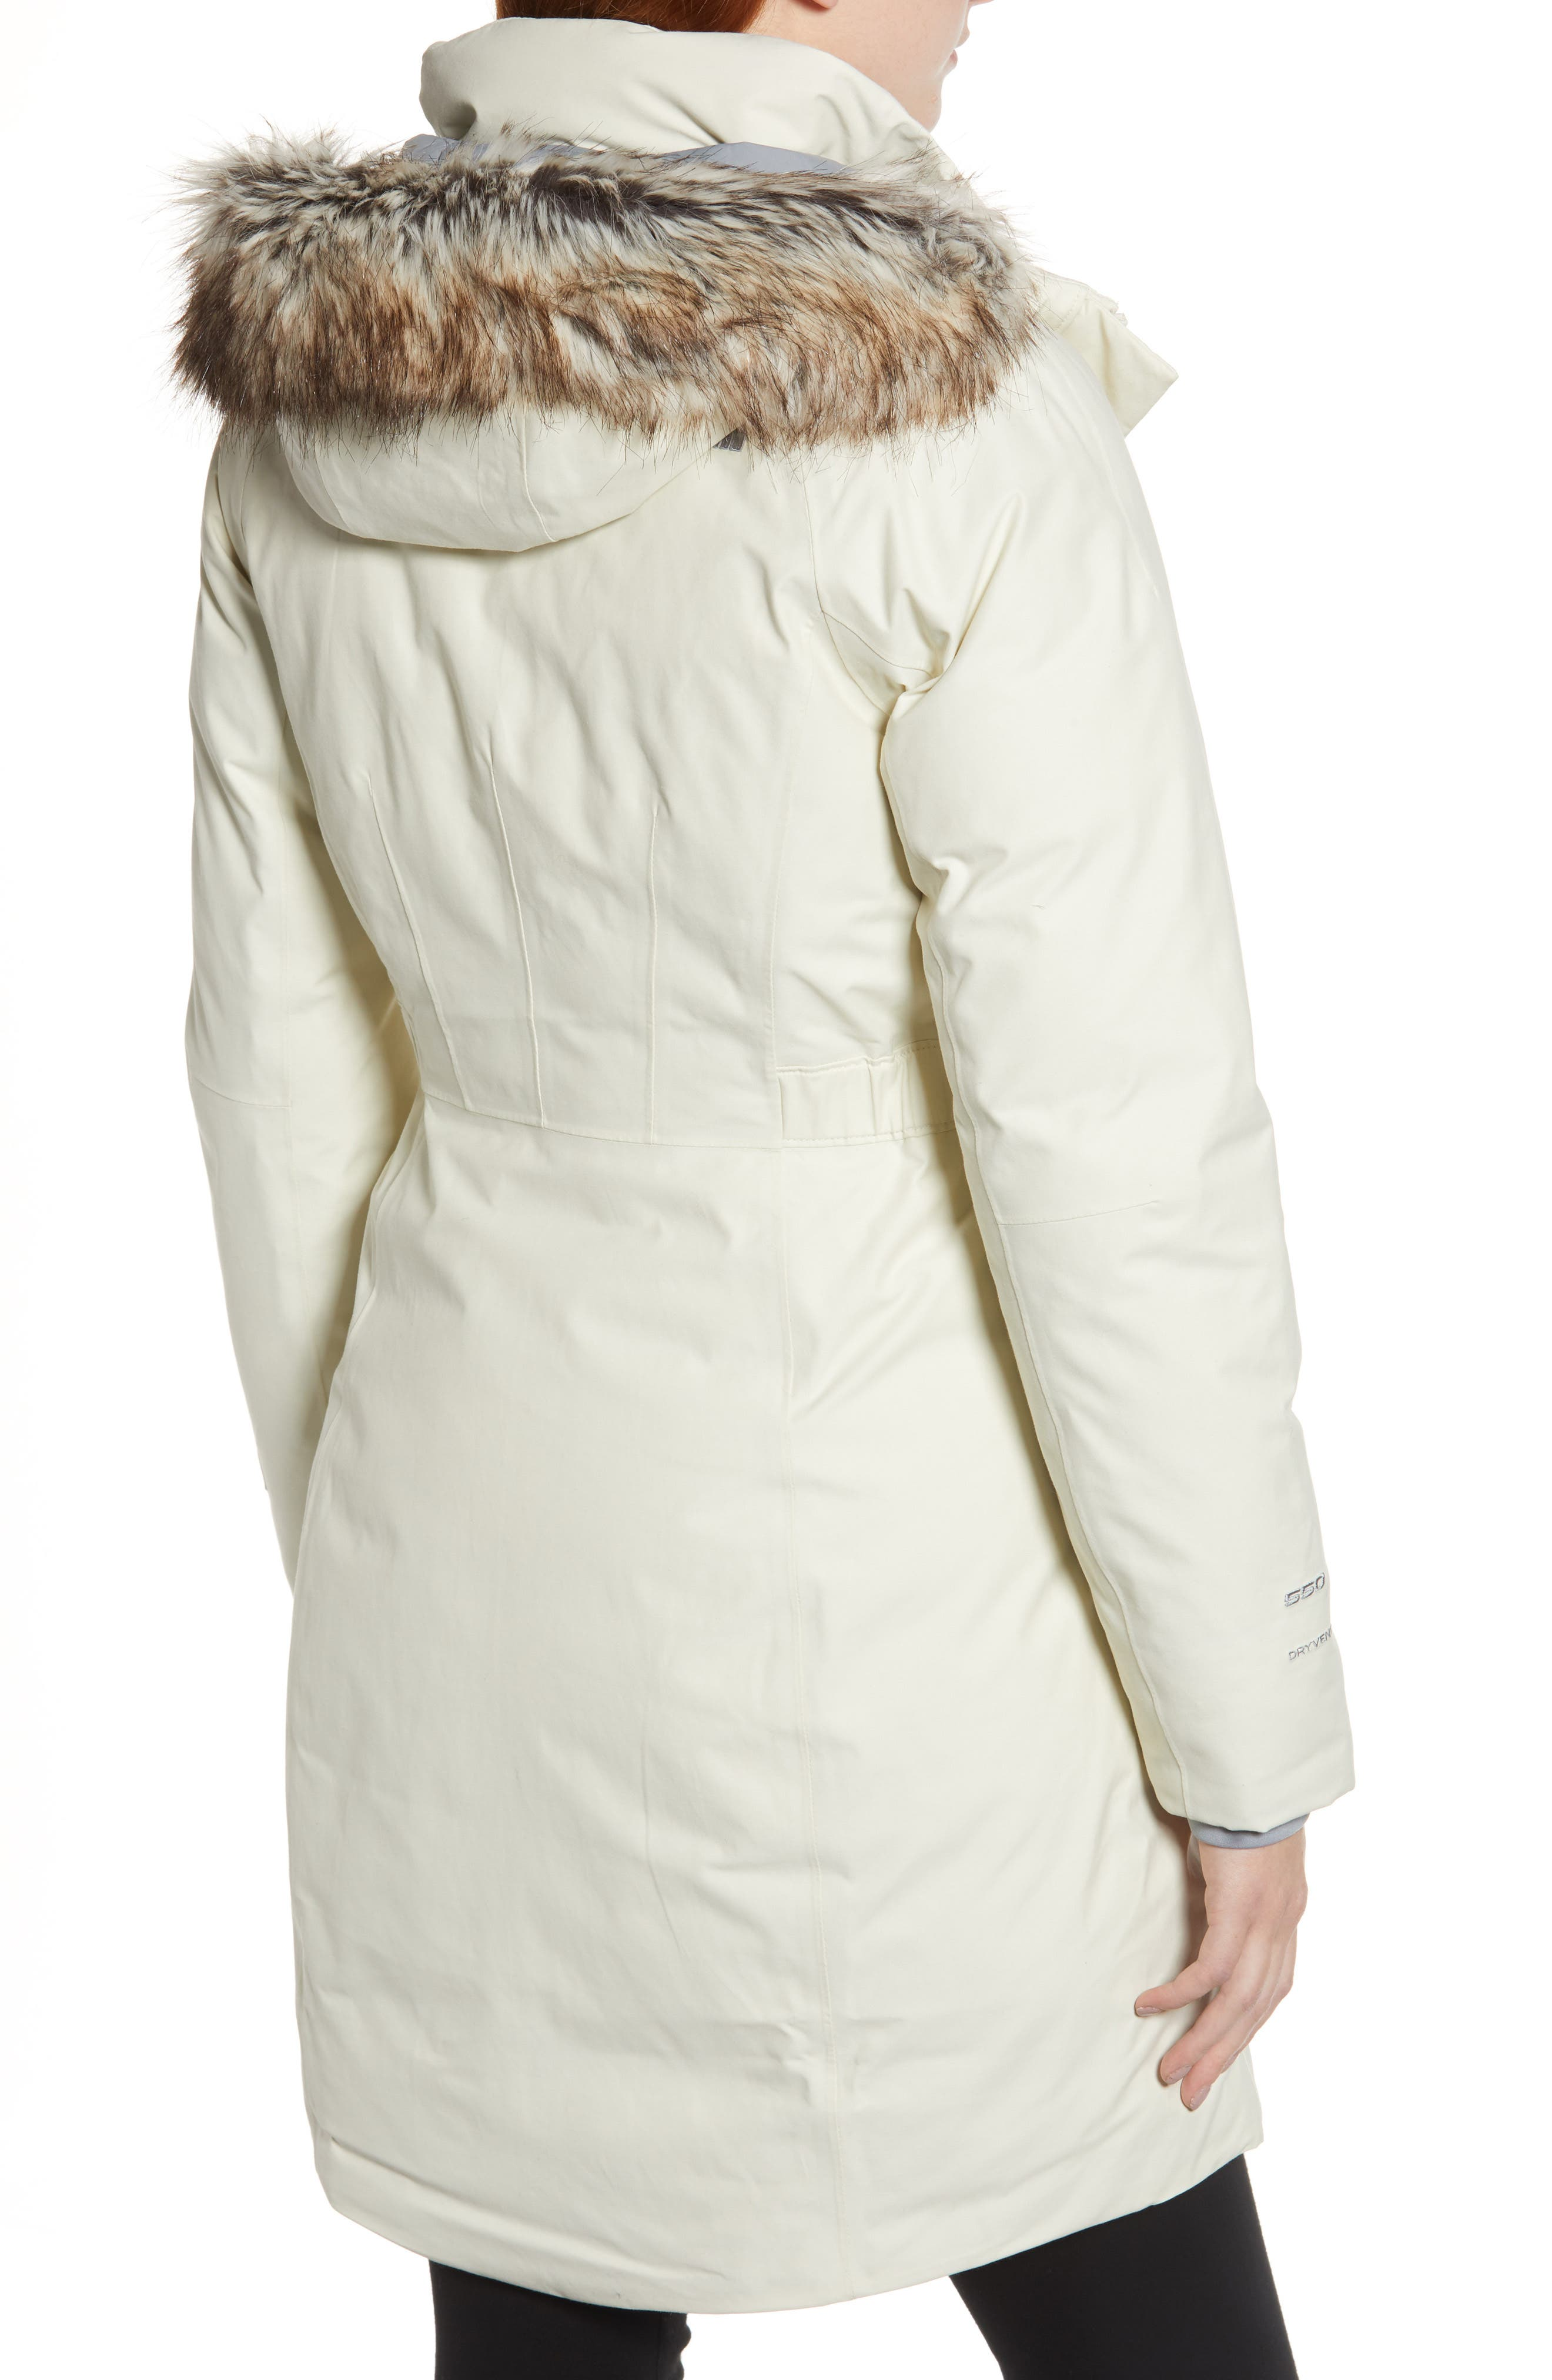 Arctic II Waterproof 550 Fill Power Down Parka with Faux Fur Trim,                             Alternate thumbnail 2, color,                             VINTAGE WHITE